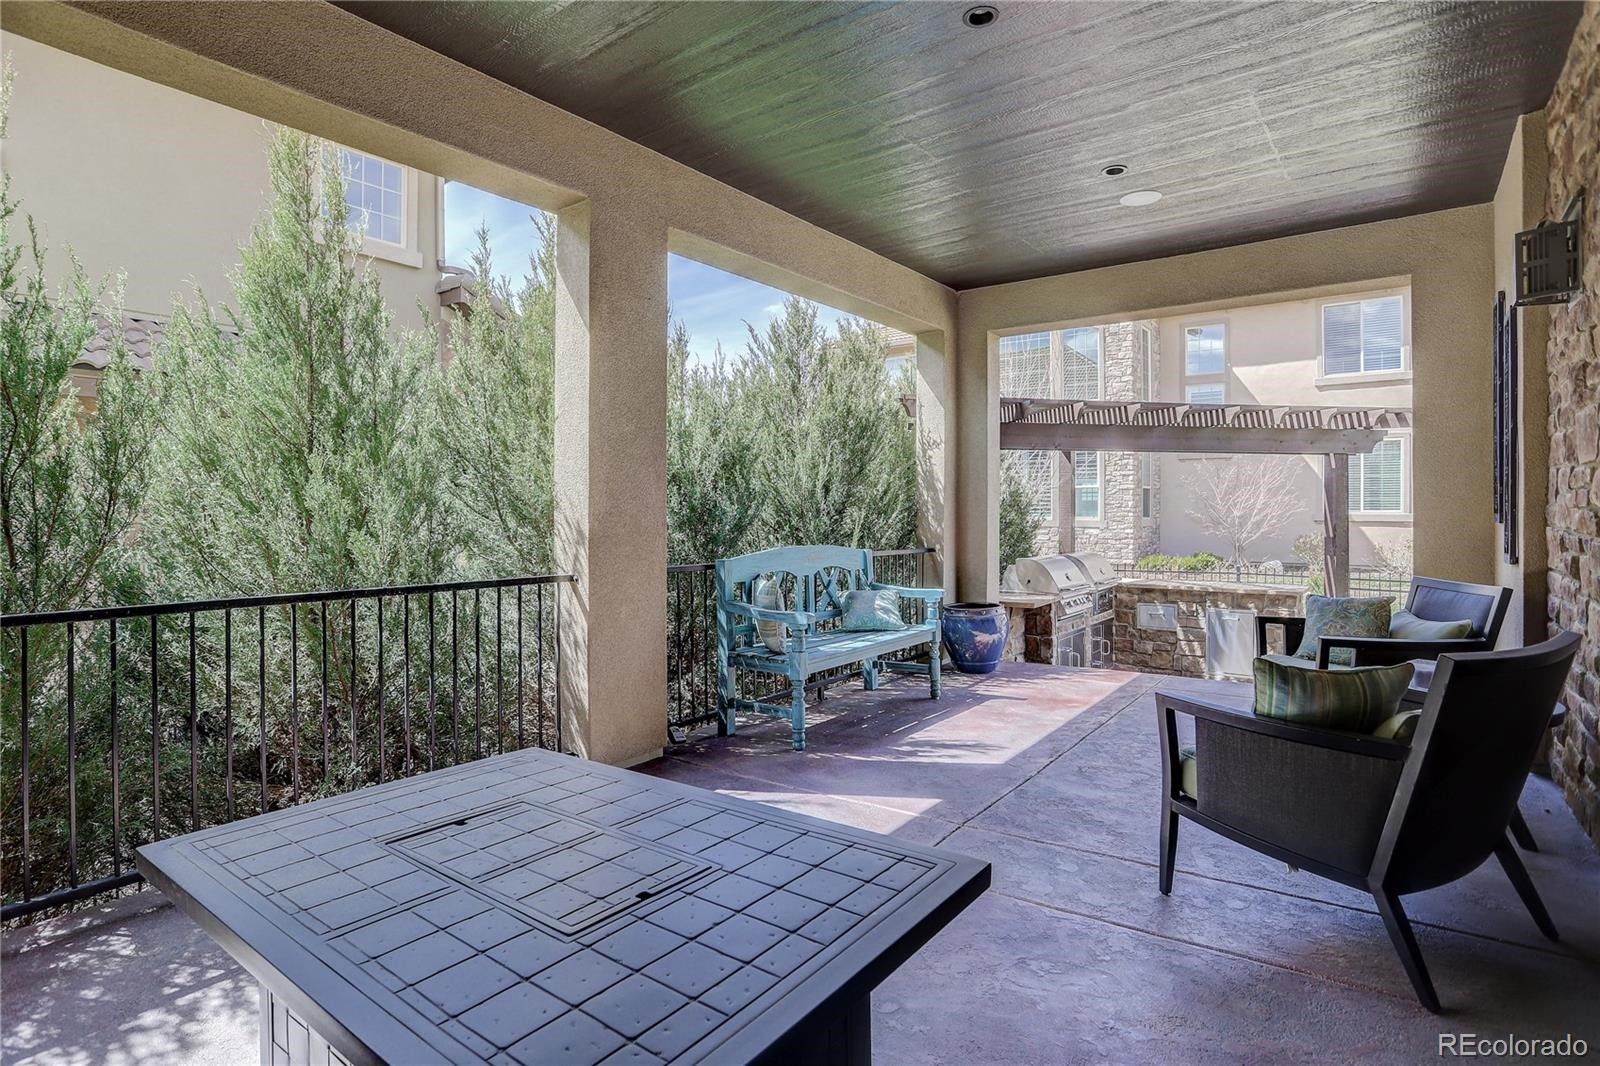 MLS# 8360577 - 4 - 2247 S Isabell Court, Lakewood, CO 80228